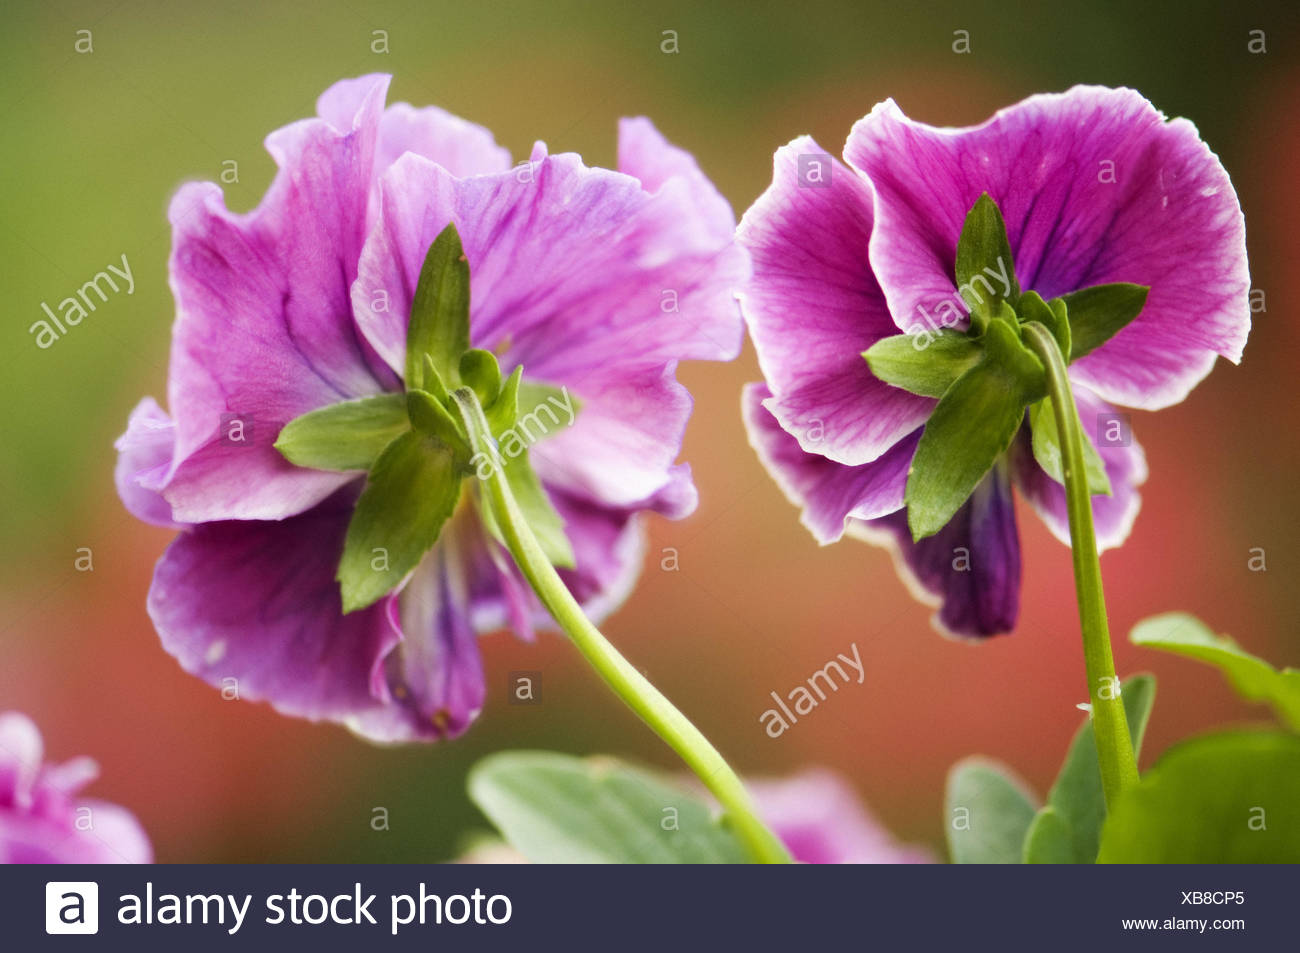 Two pink pansy flowers viola stock photos two pink pansy flowers two dark pink pansy flowers viola x wittrockiana stock image mightylinksfo Choice Image